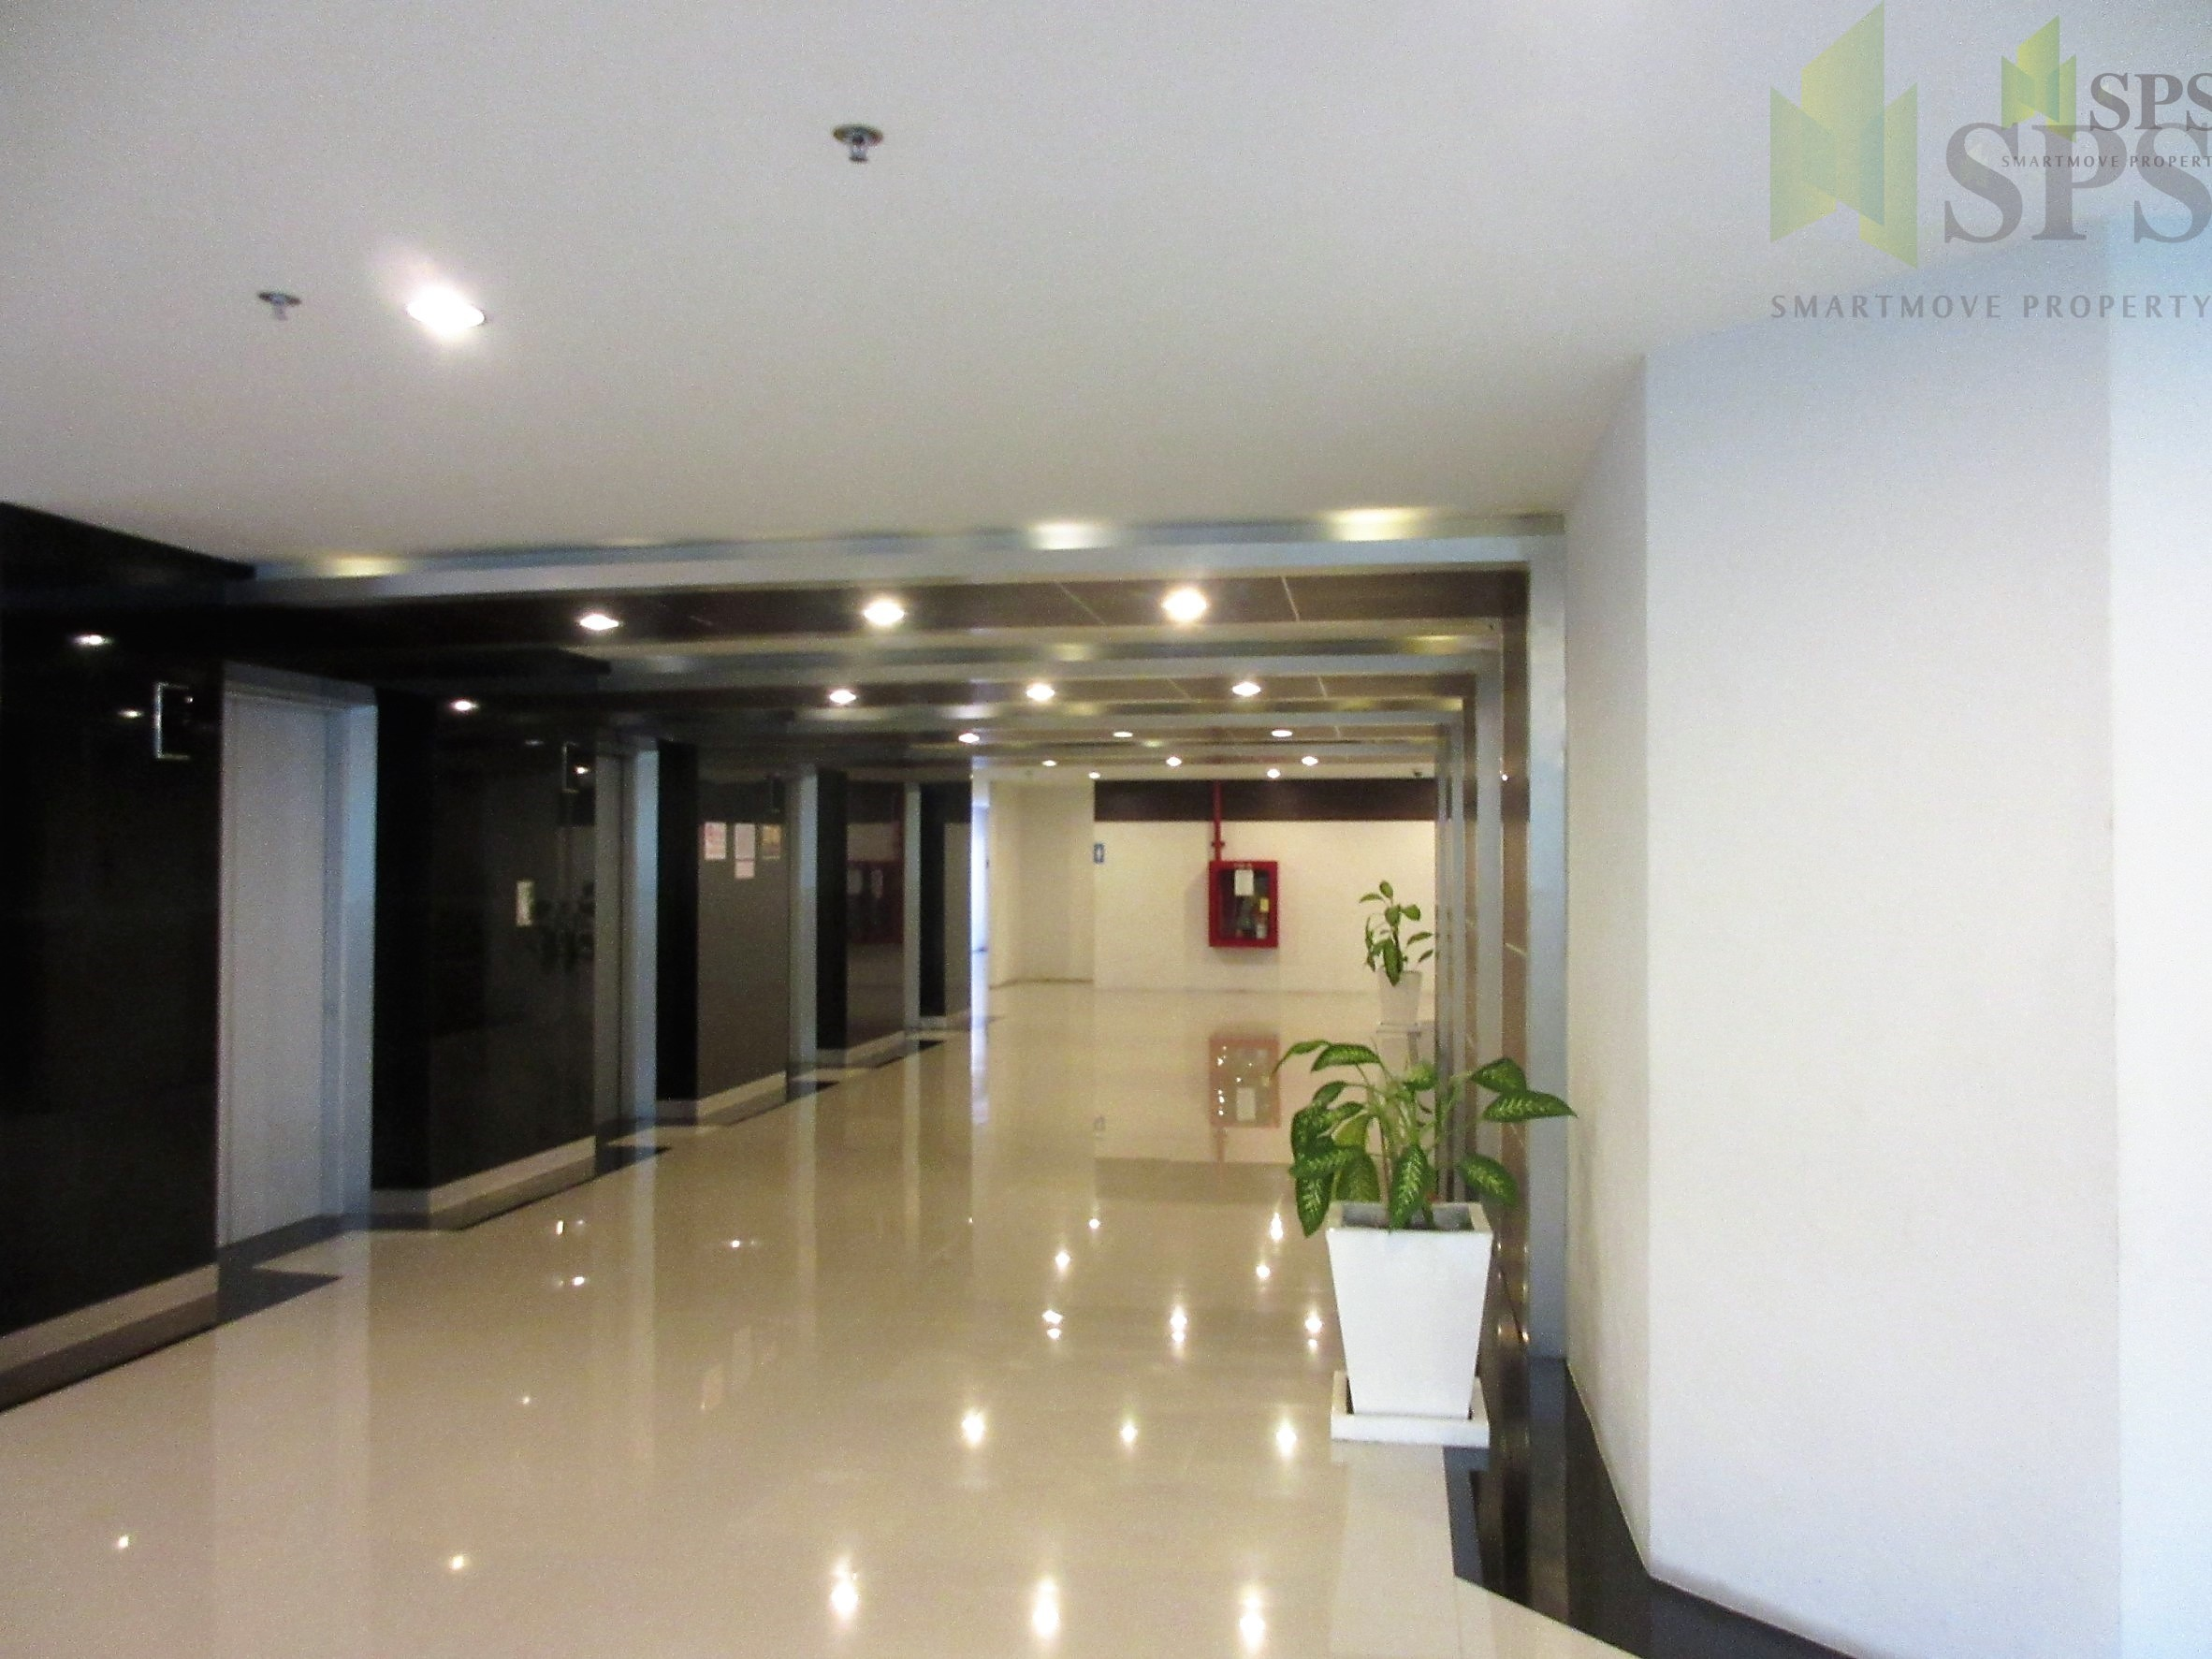 Office FOR SALE (SPS-GO49)